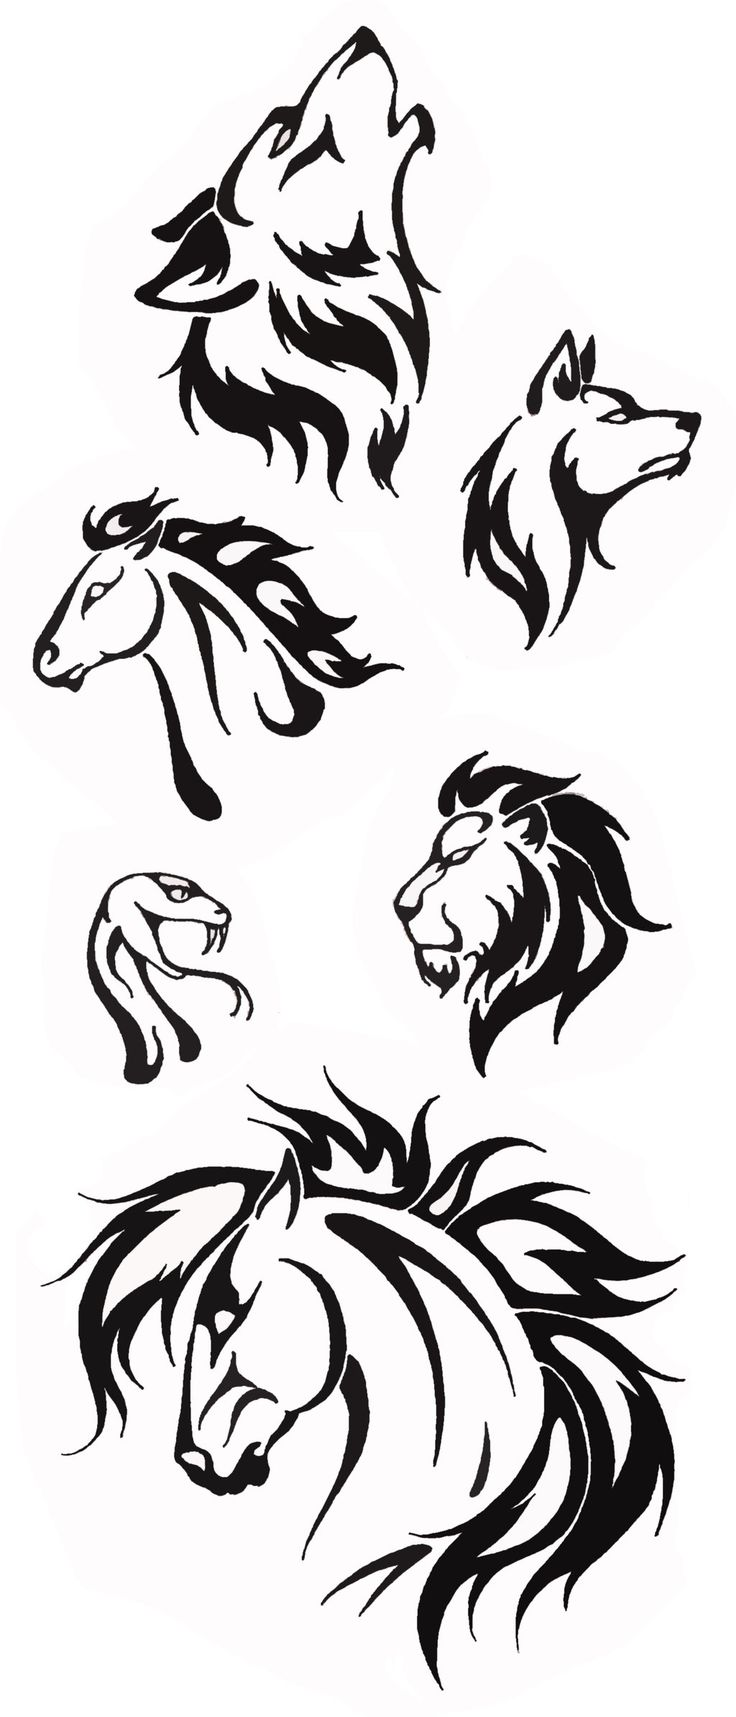 simple tribal animal designs tribal animal tattoos tribal tiger tattoo ...